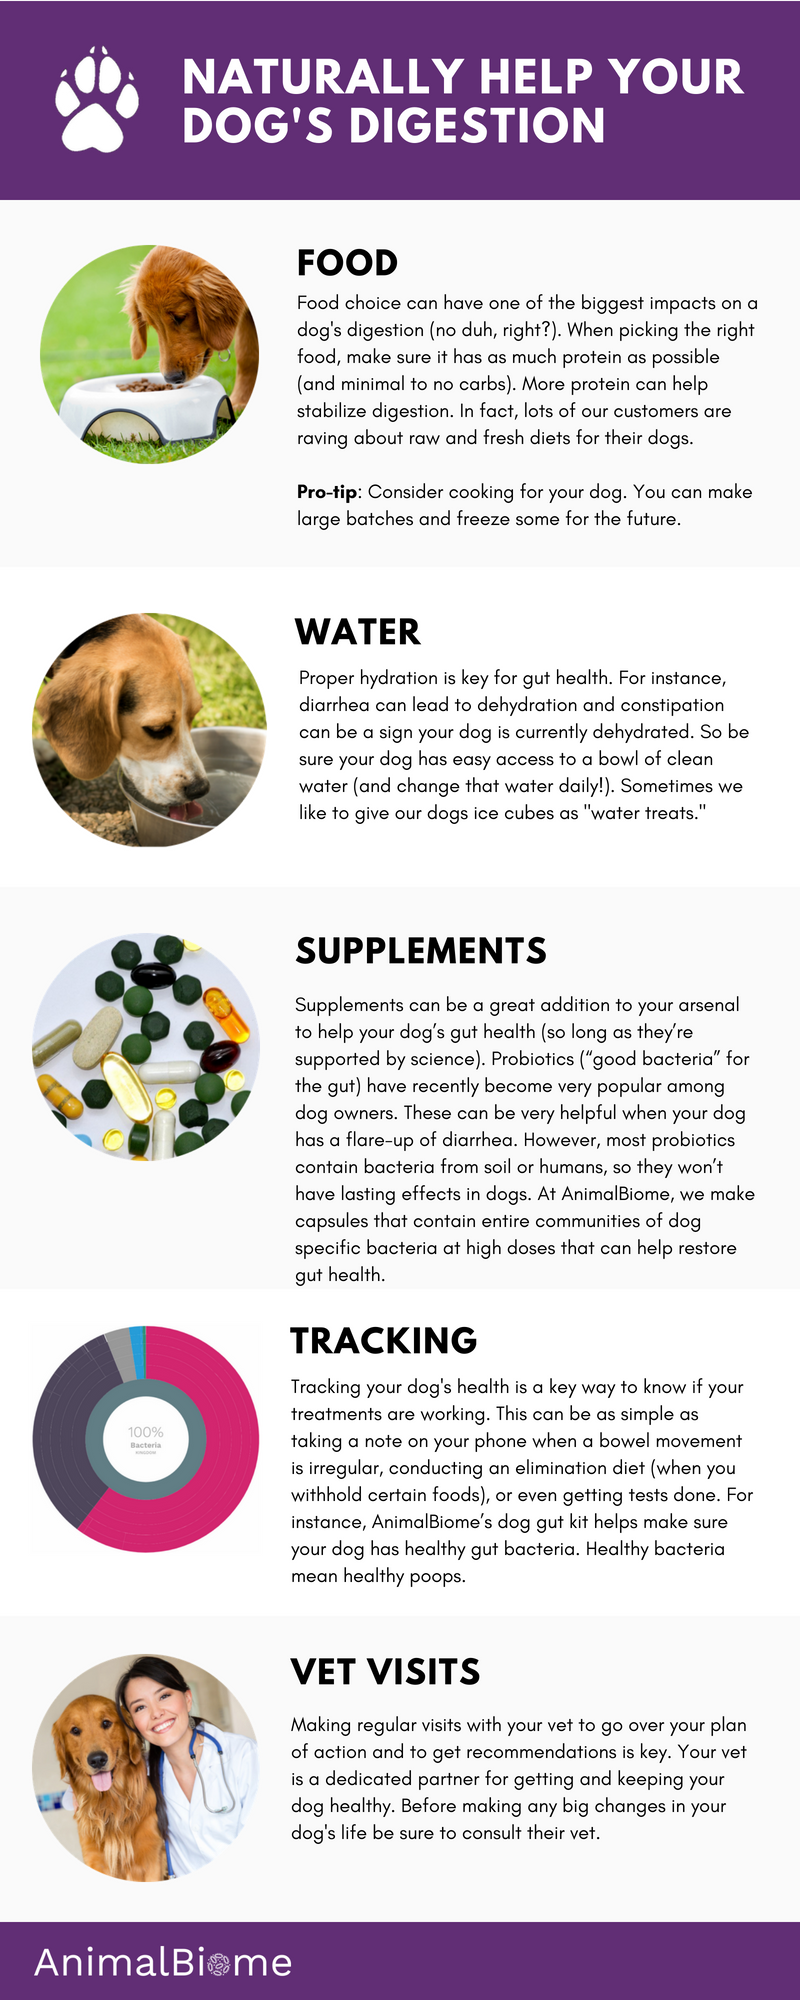 Naturally balancing a dog's digestion - tips in infographic format.